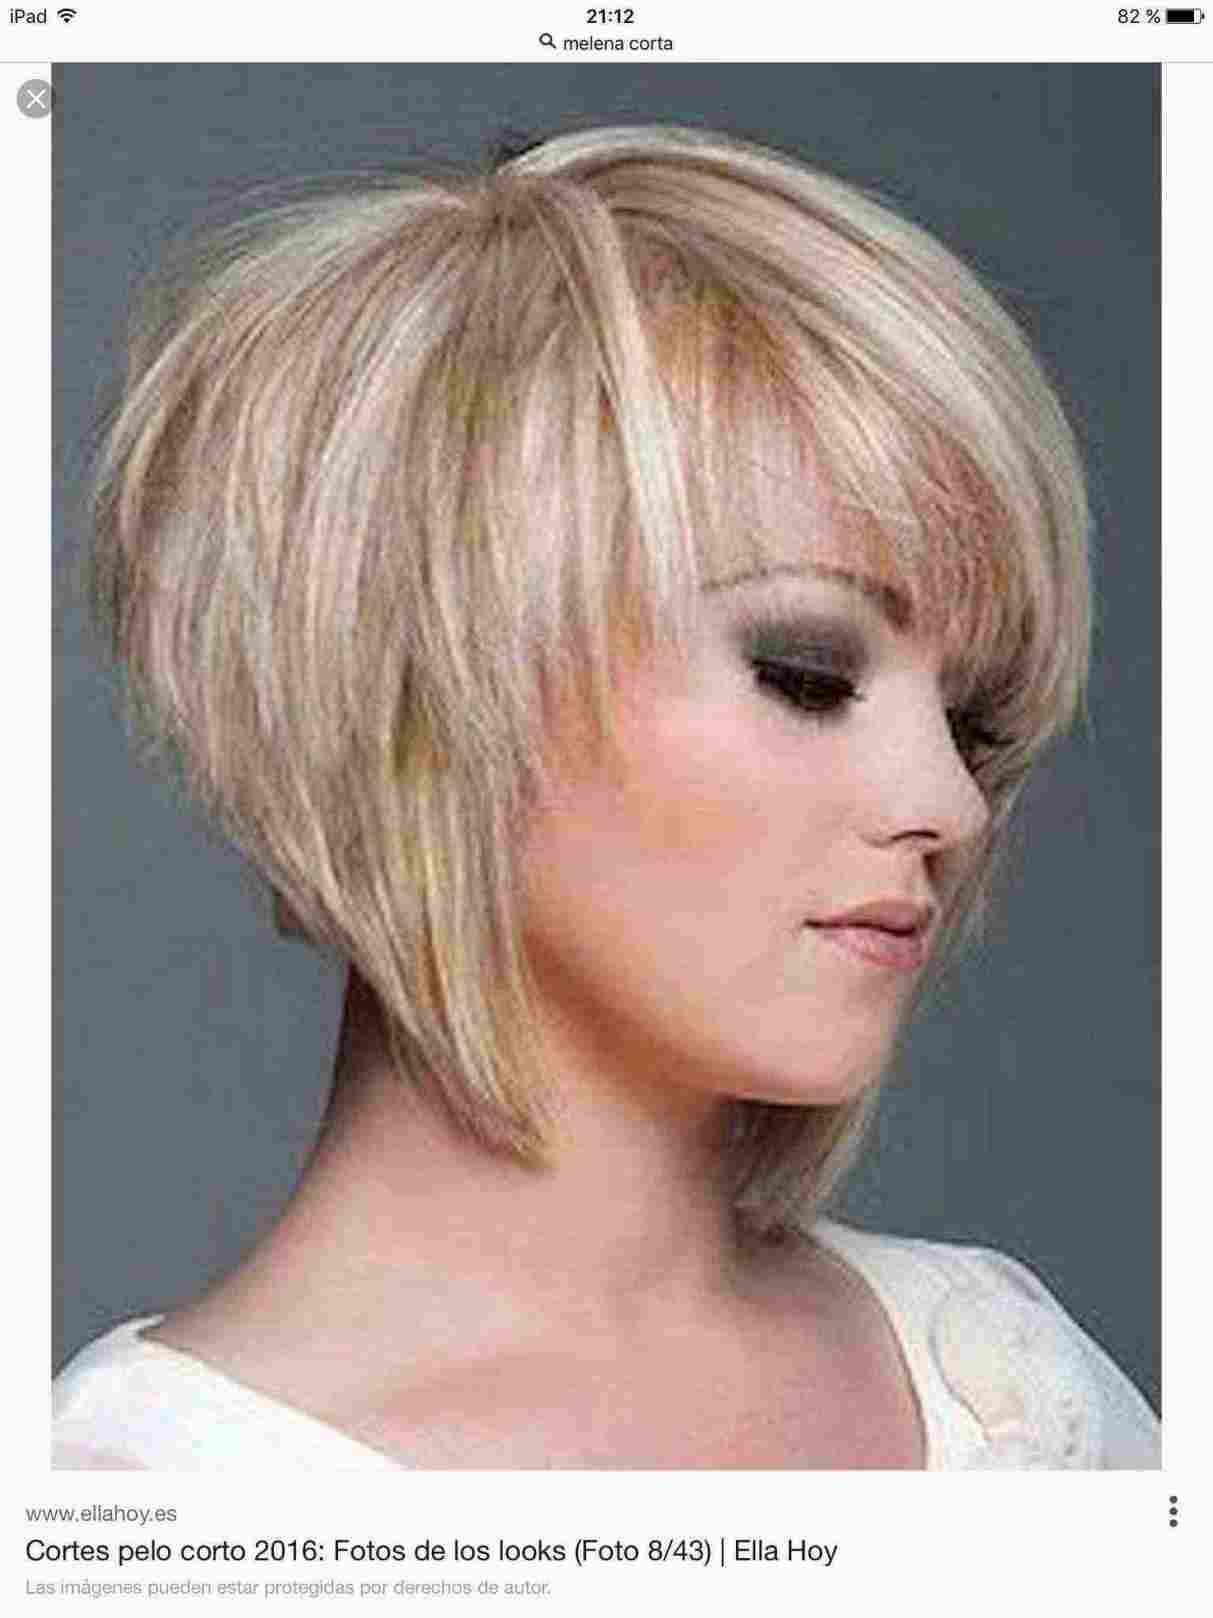 Mages Short Styles Fine Thin Hair Older Wome N Short Hairstyles For Older Women Over 50 Short Hairstyles For Women Hair Styles Thin Hair Haircuts